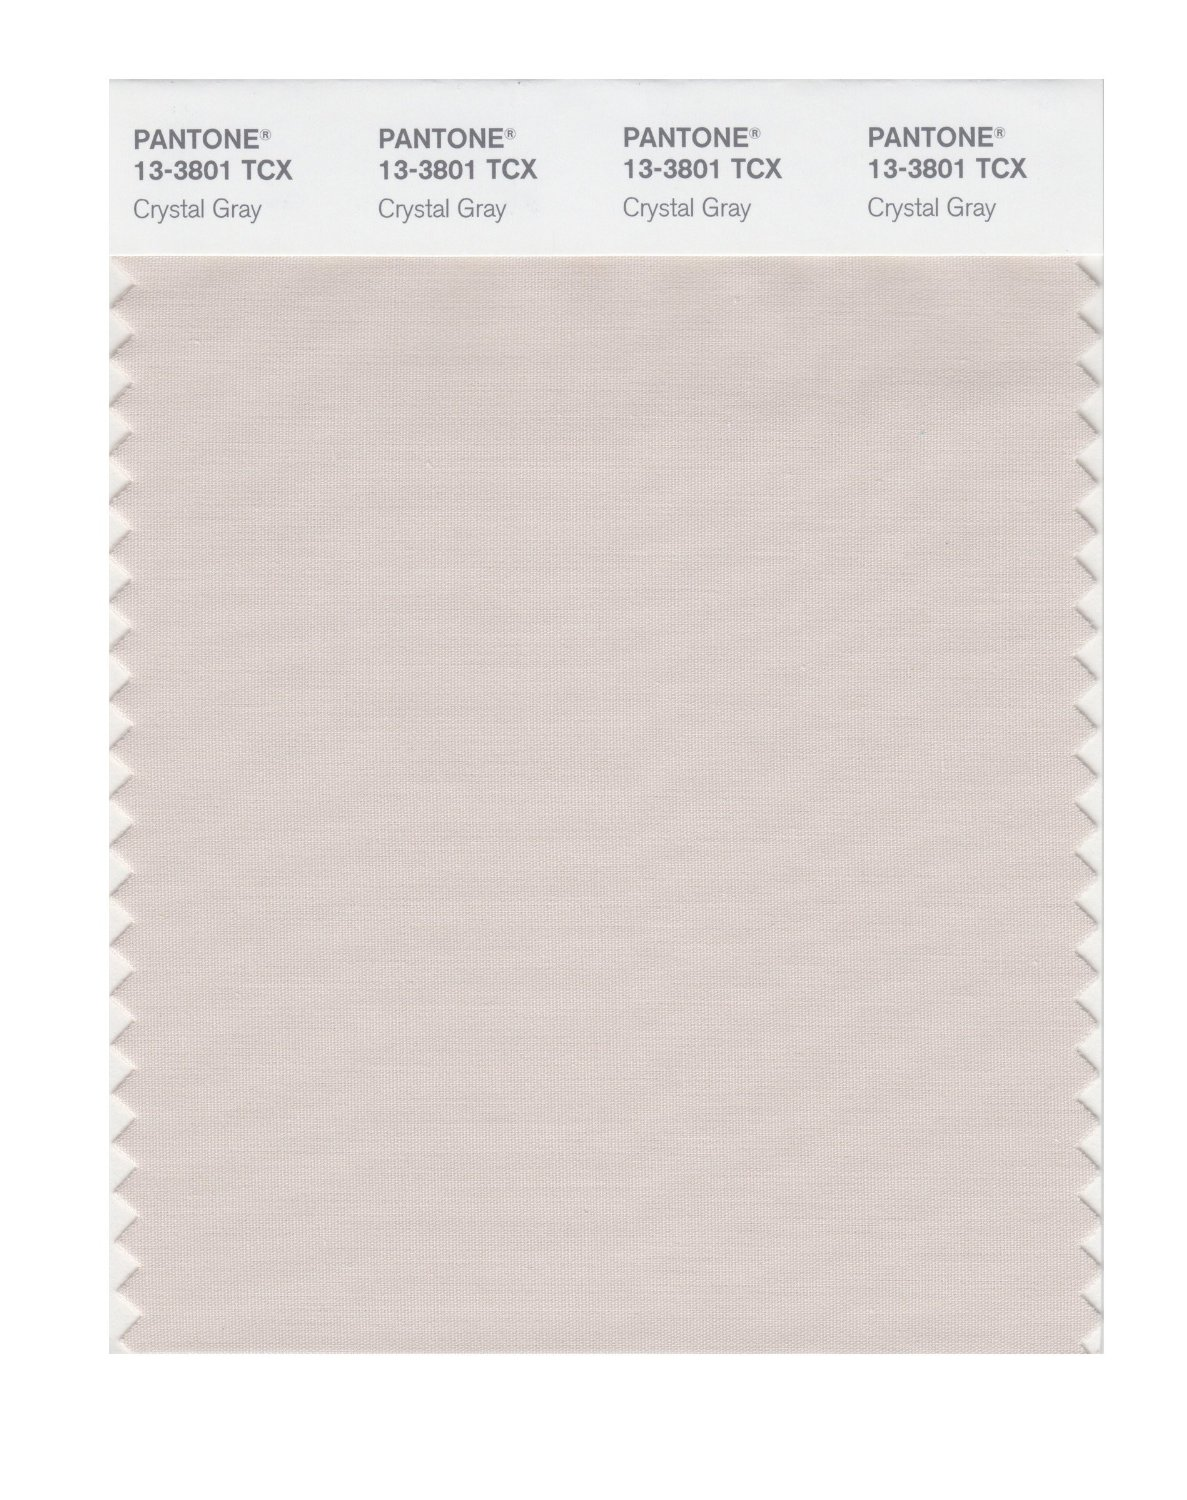 Pantone Smart Swatch 13-3801 Crystal Gray